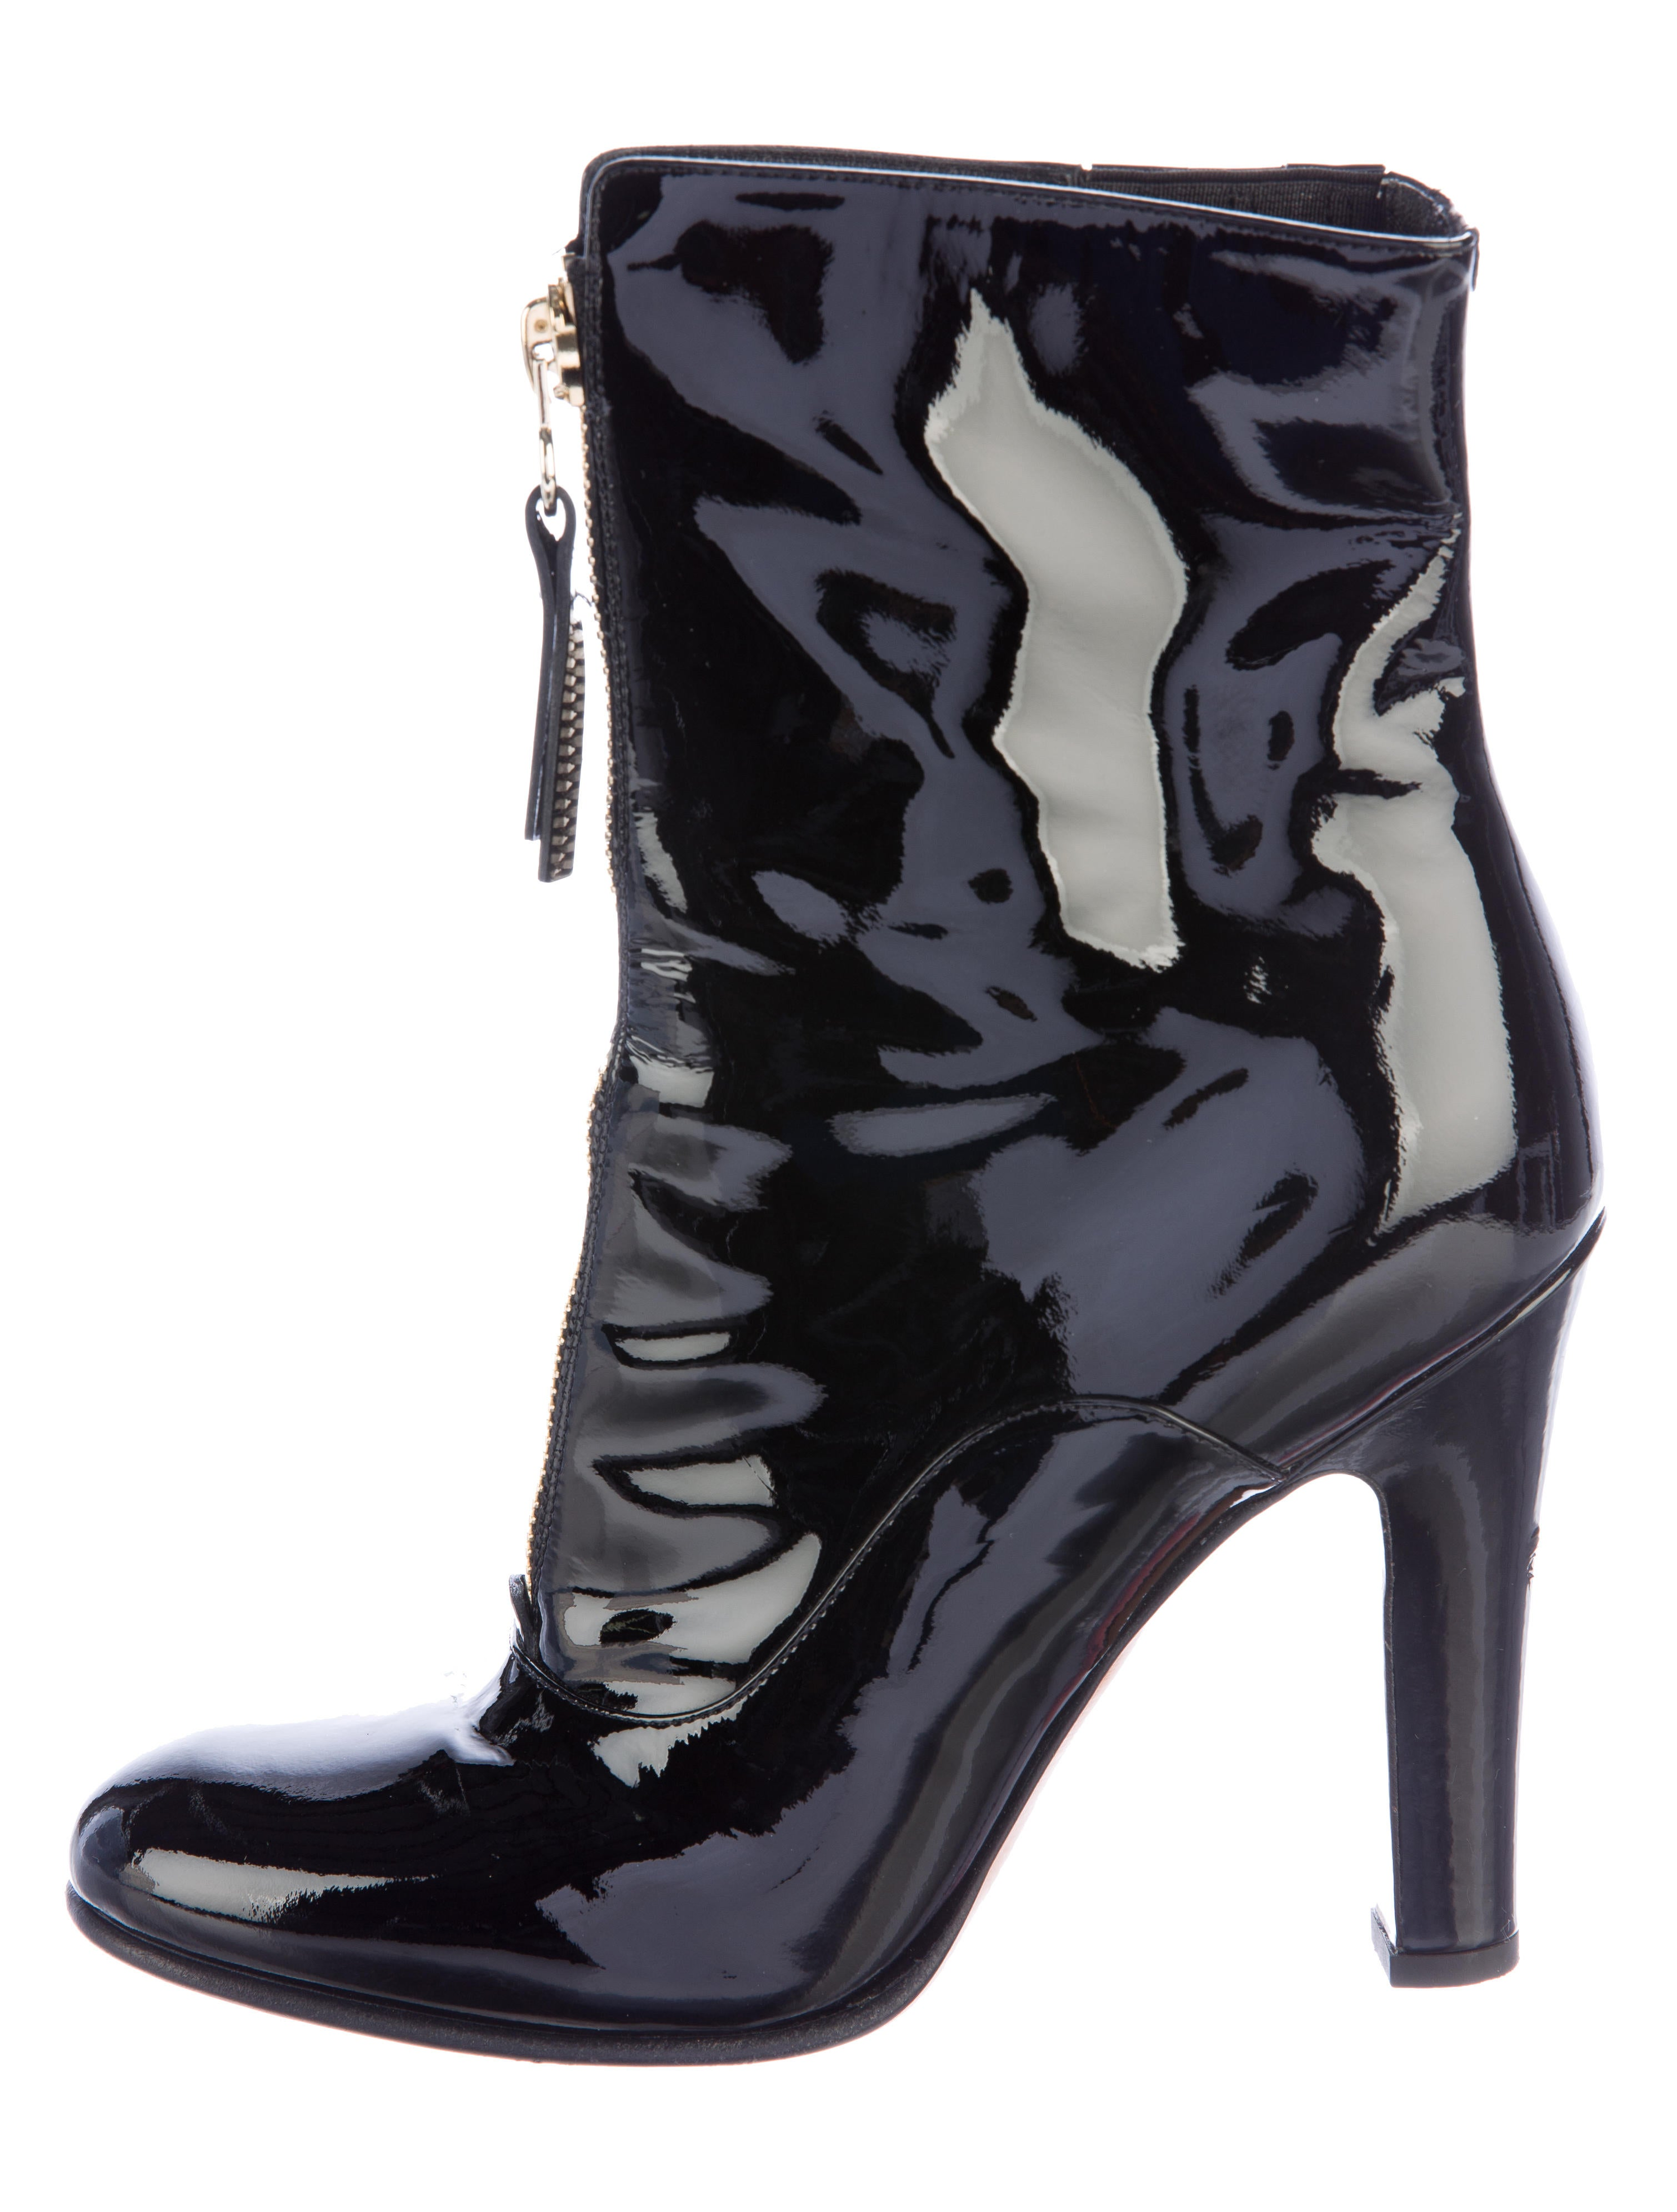 Find black patent ankle boots at ShopStyle. Shop the latest collection of black patent ankle boots from the most popular stores - all in one place.